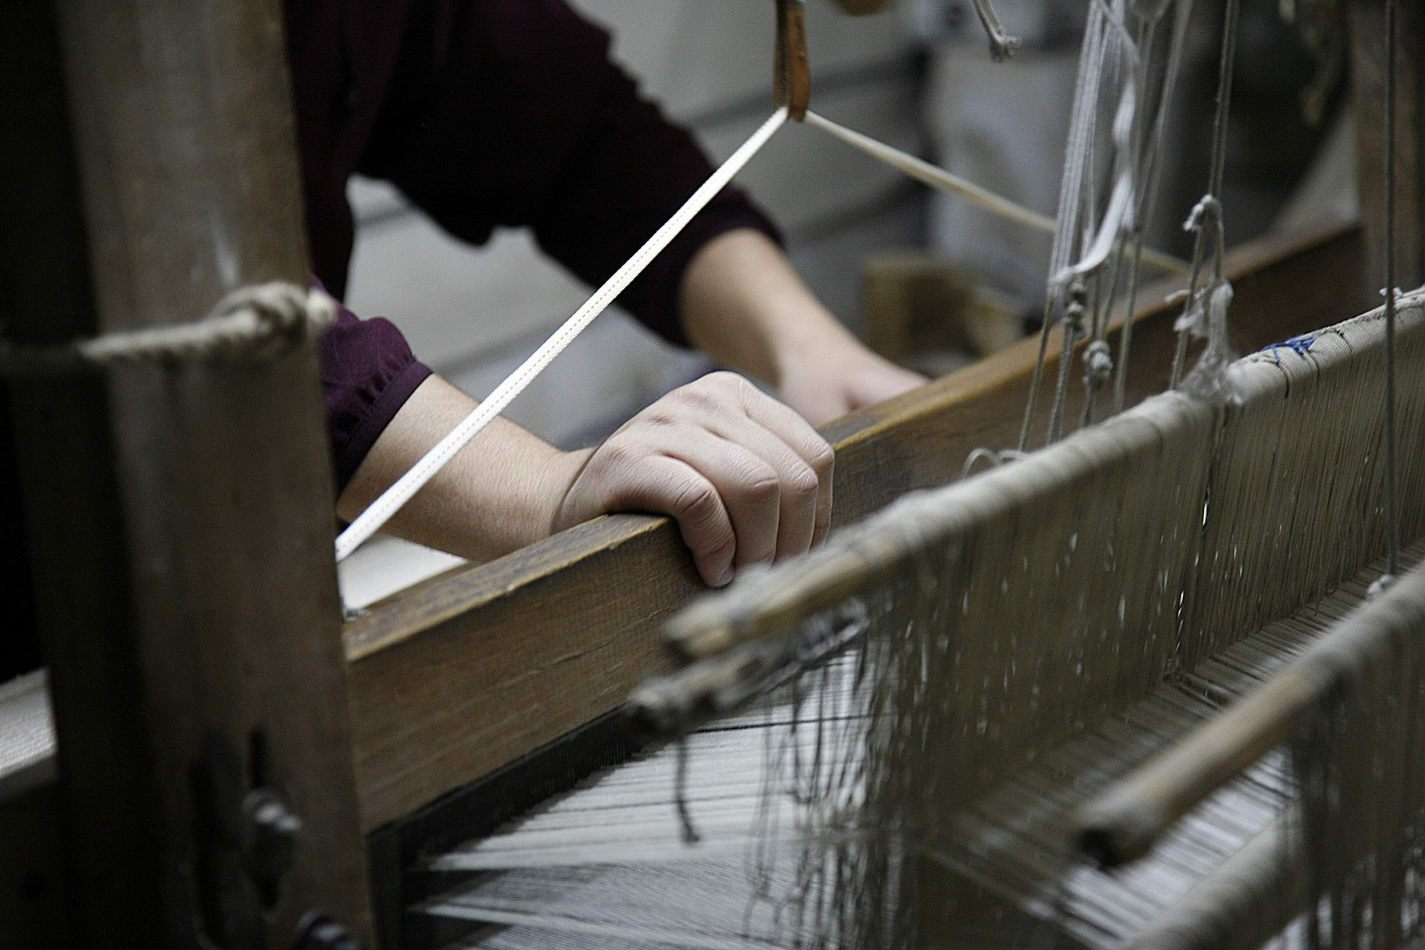 Anthony Ellis Photography: Shadows and Steps - Hand on the Loom